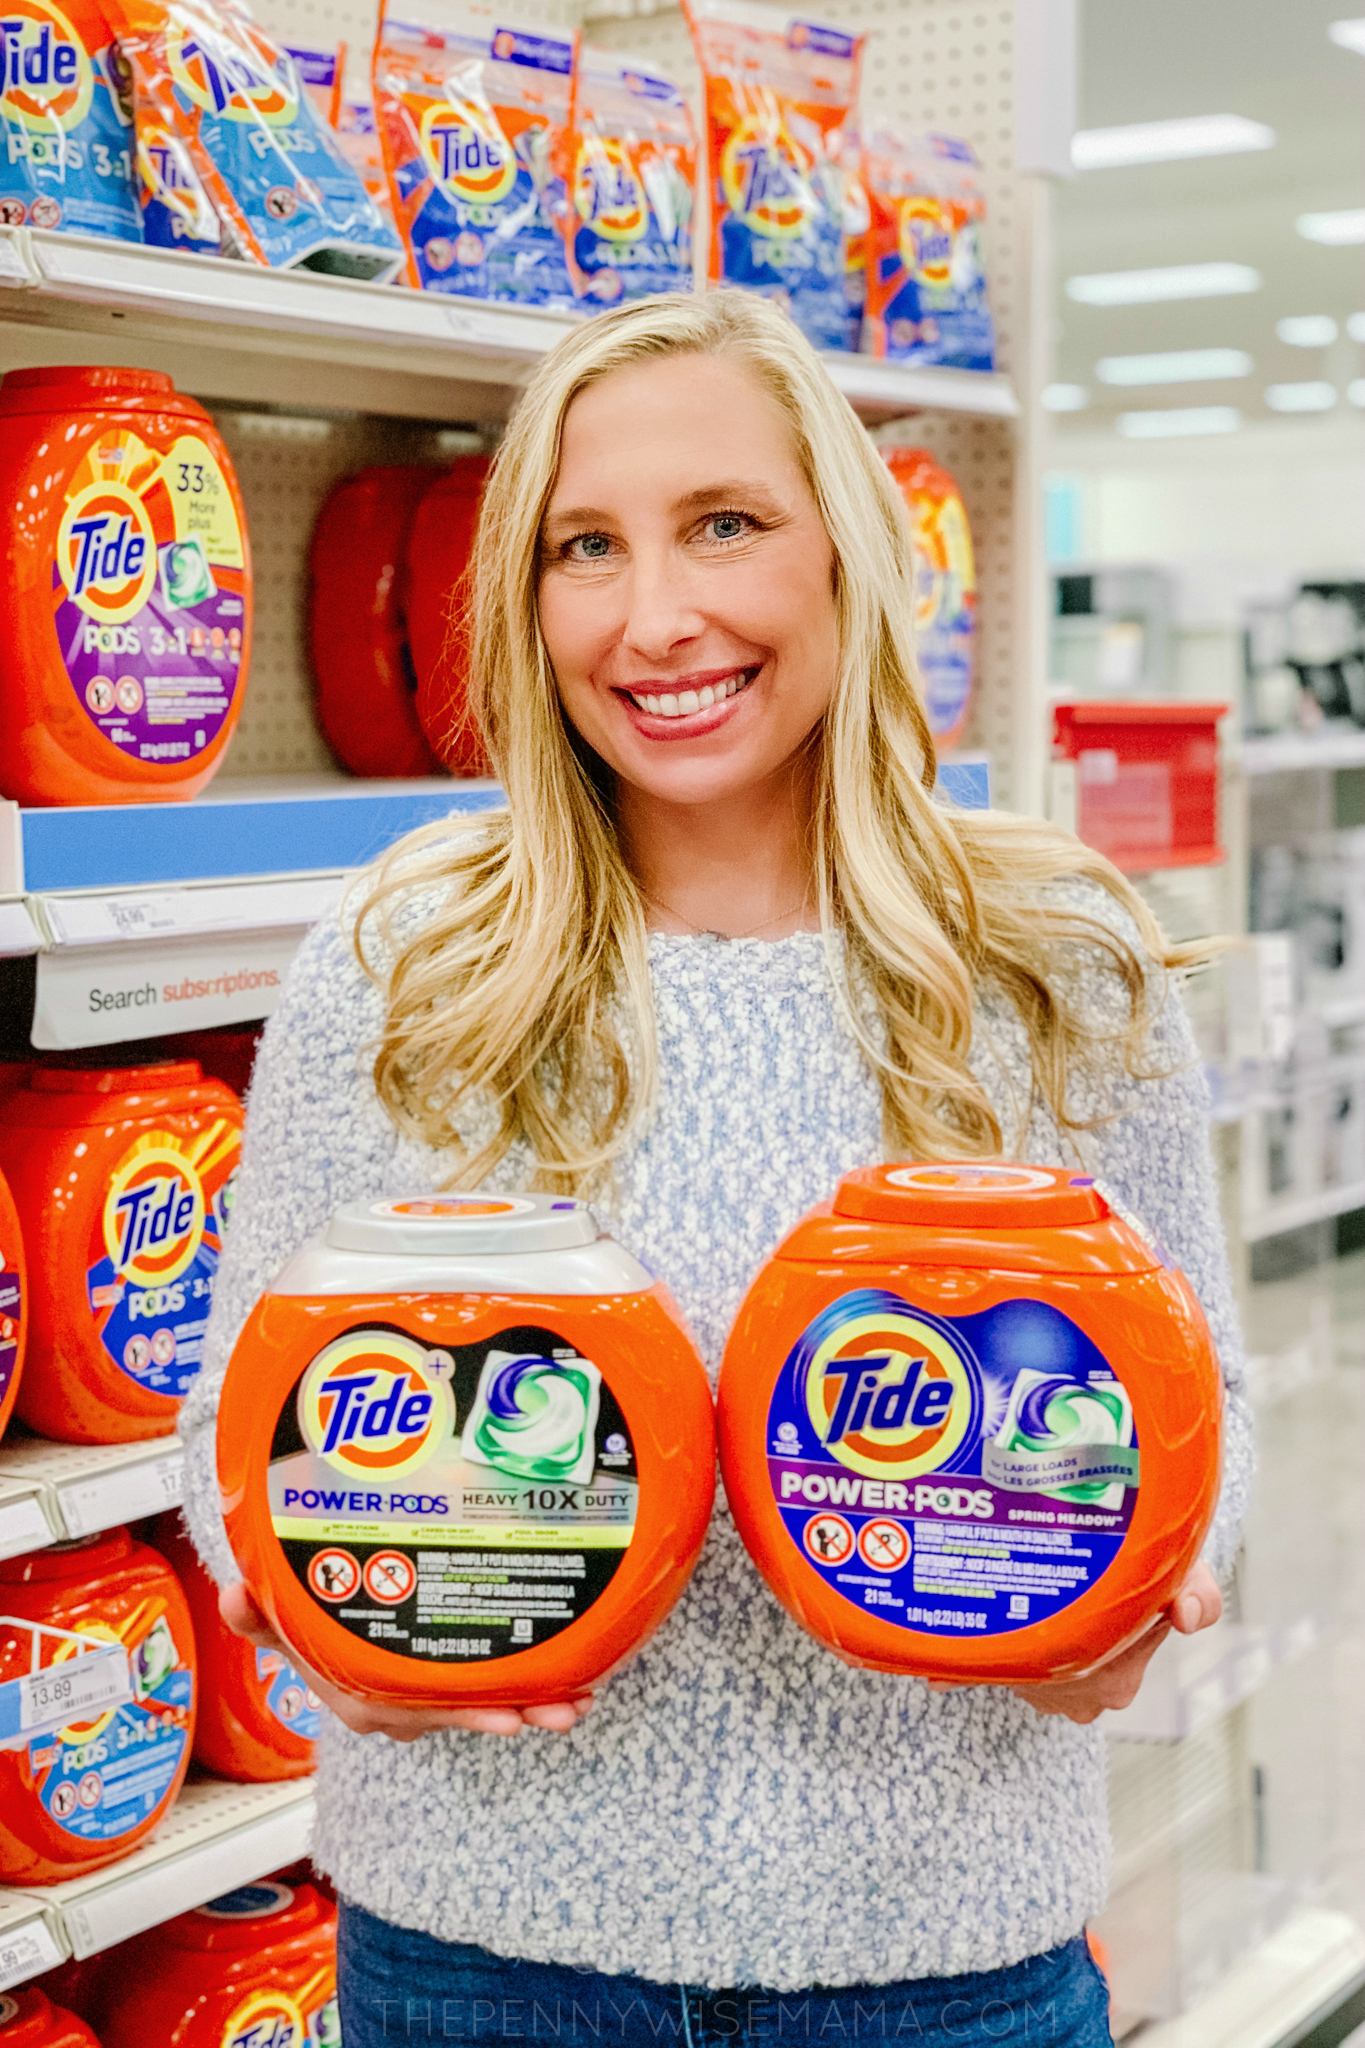 $3 off Tide Power PODS Printable Coupon